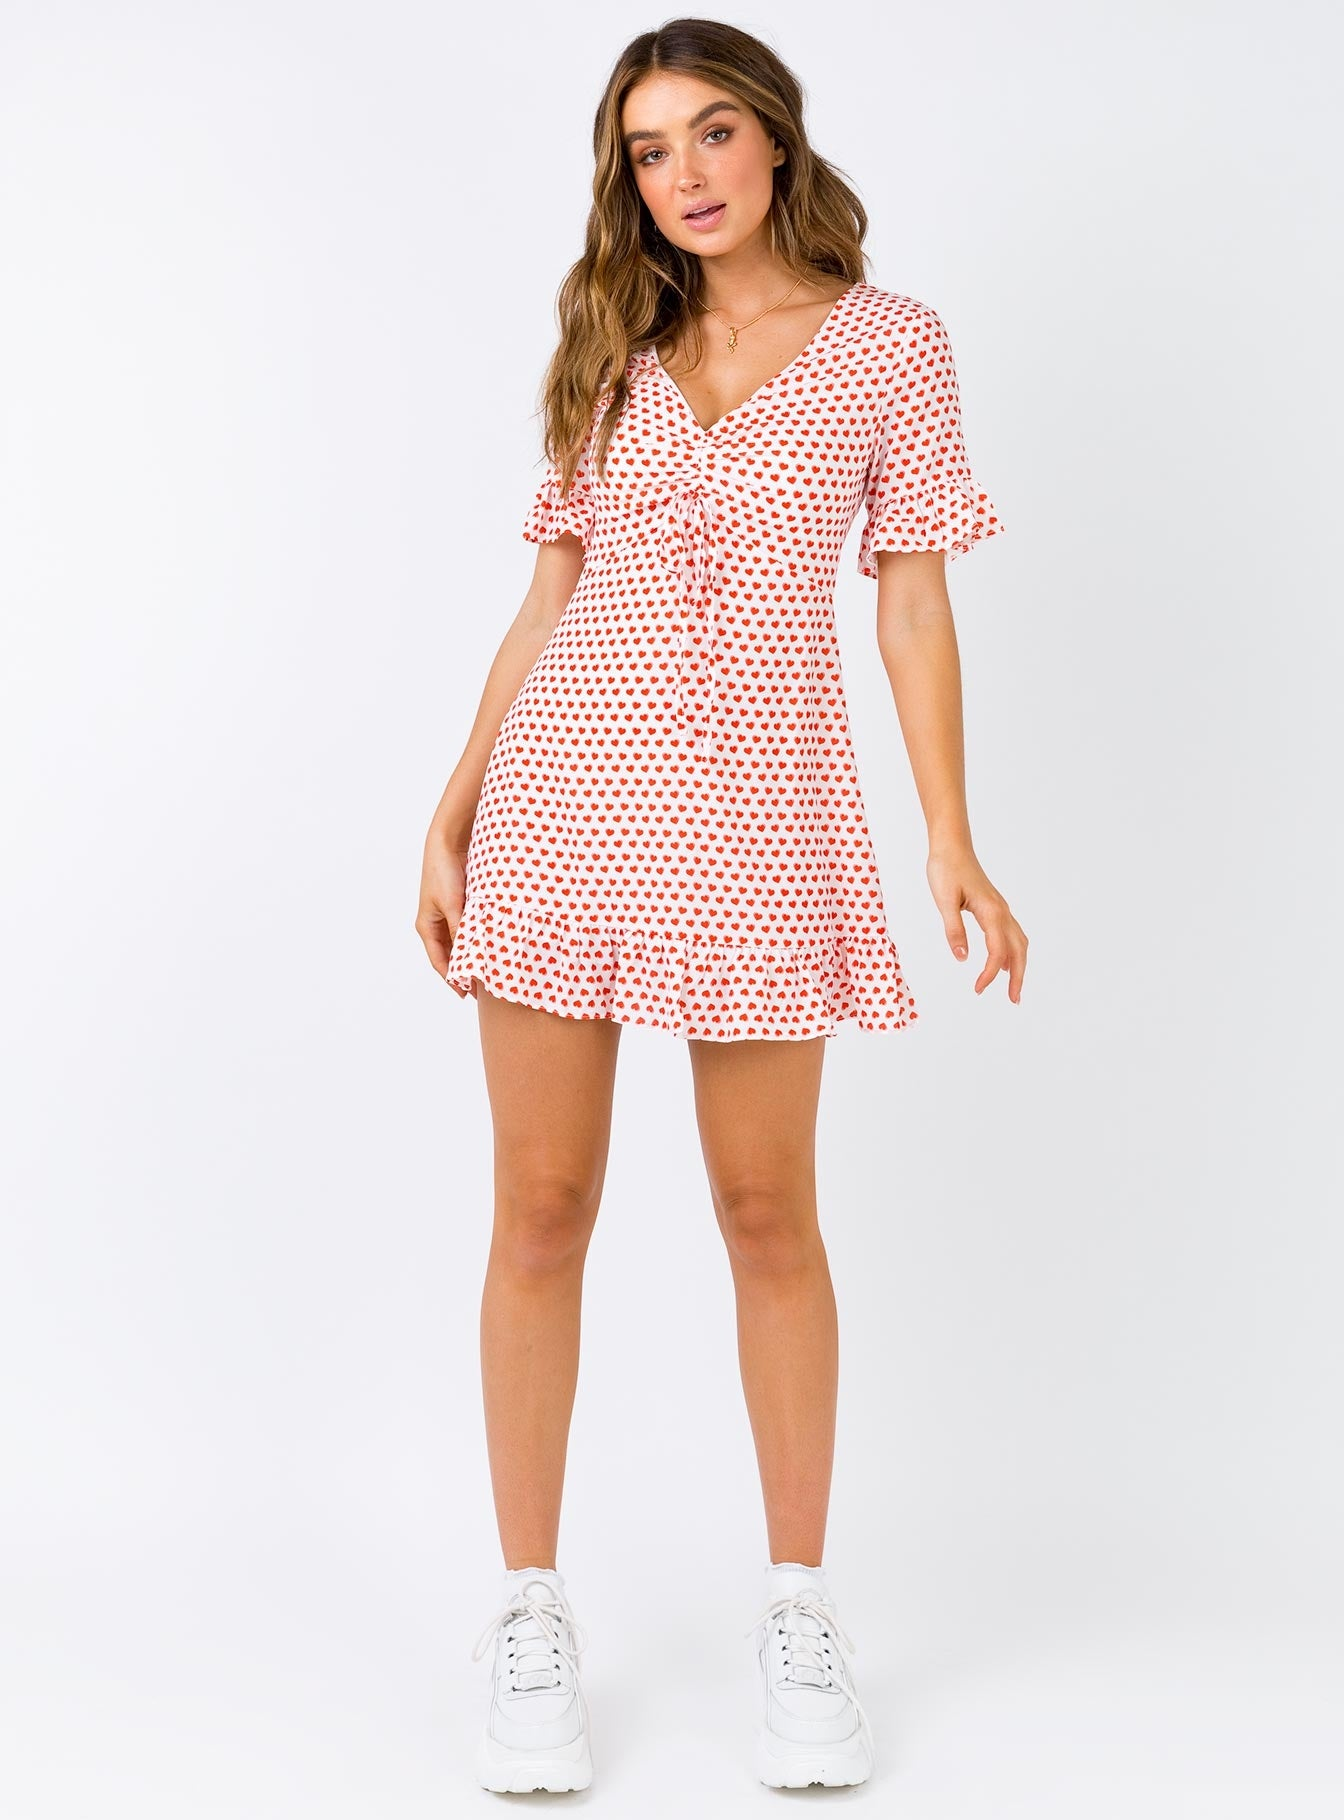 The Eris Mini Dress White/Red